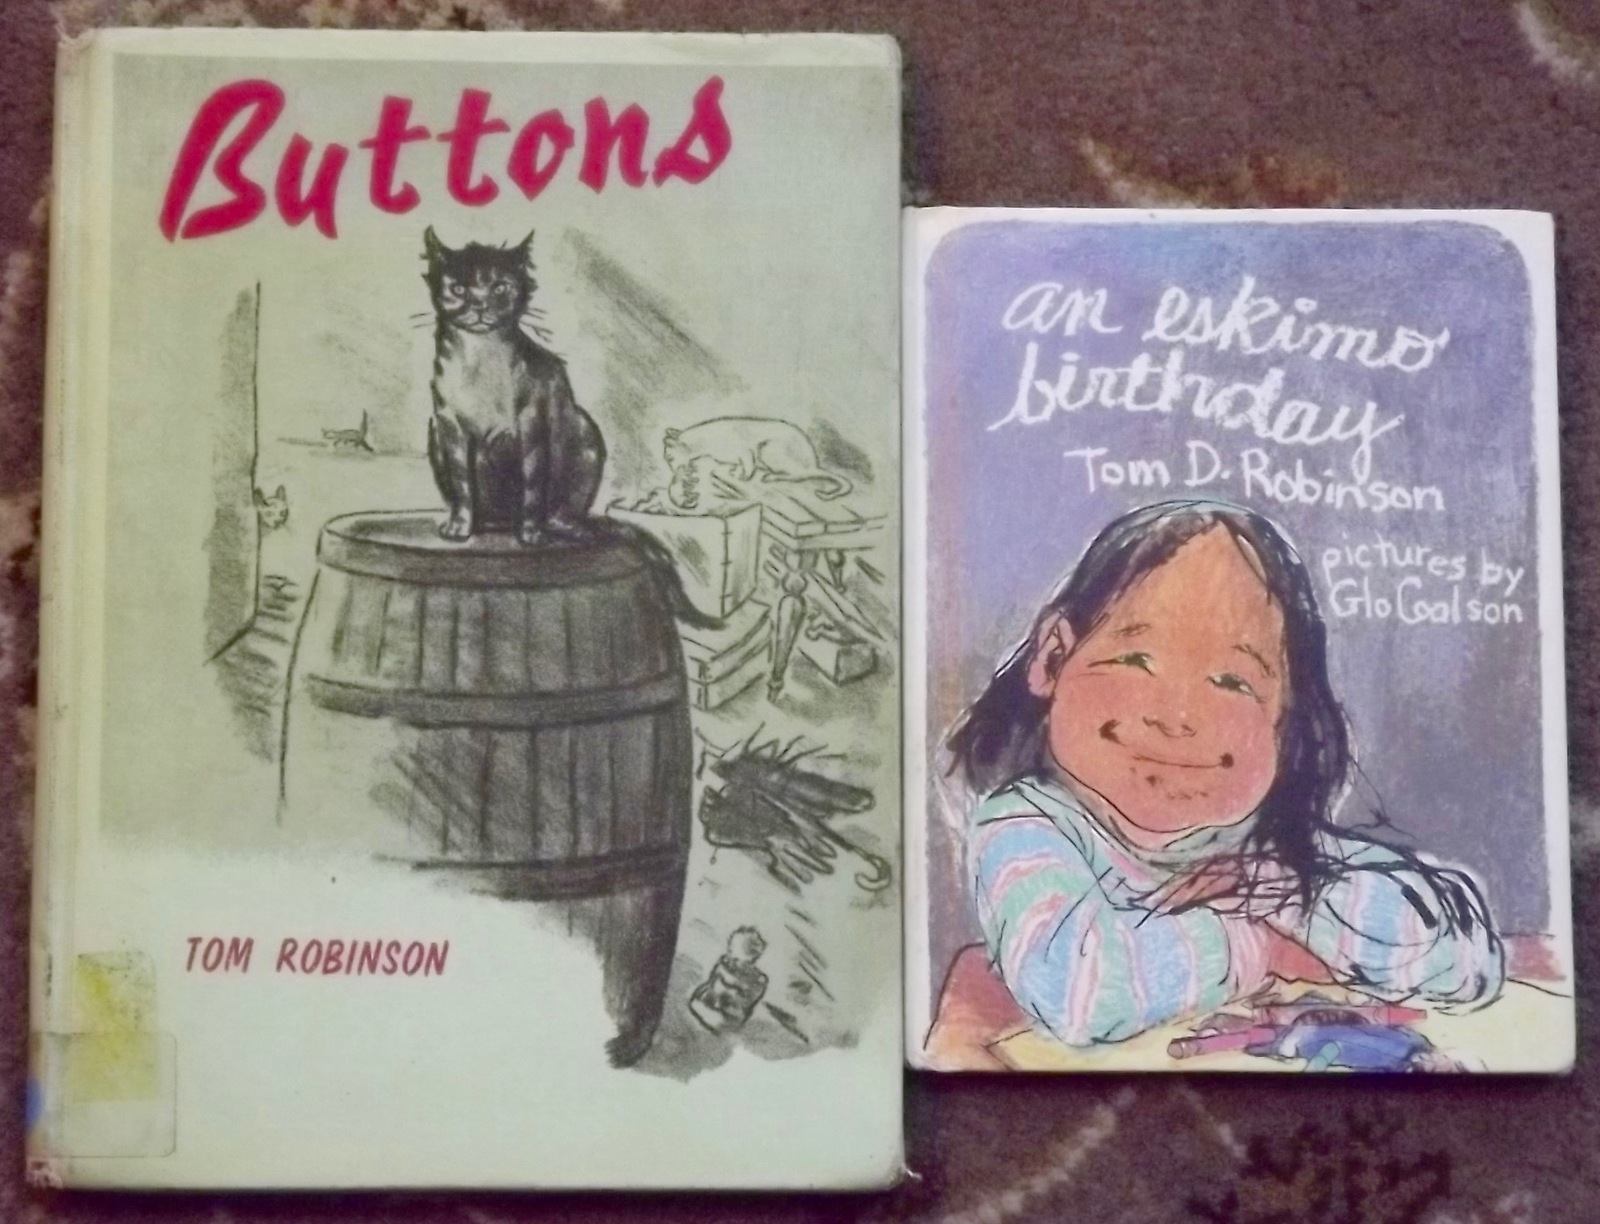 Buttons (stray cat story) and an eskimo birthday by Tom Robinson